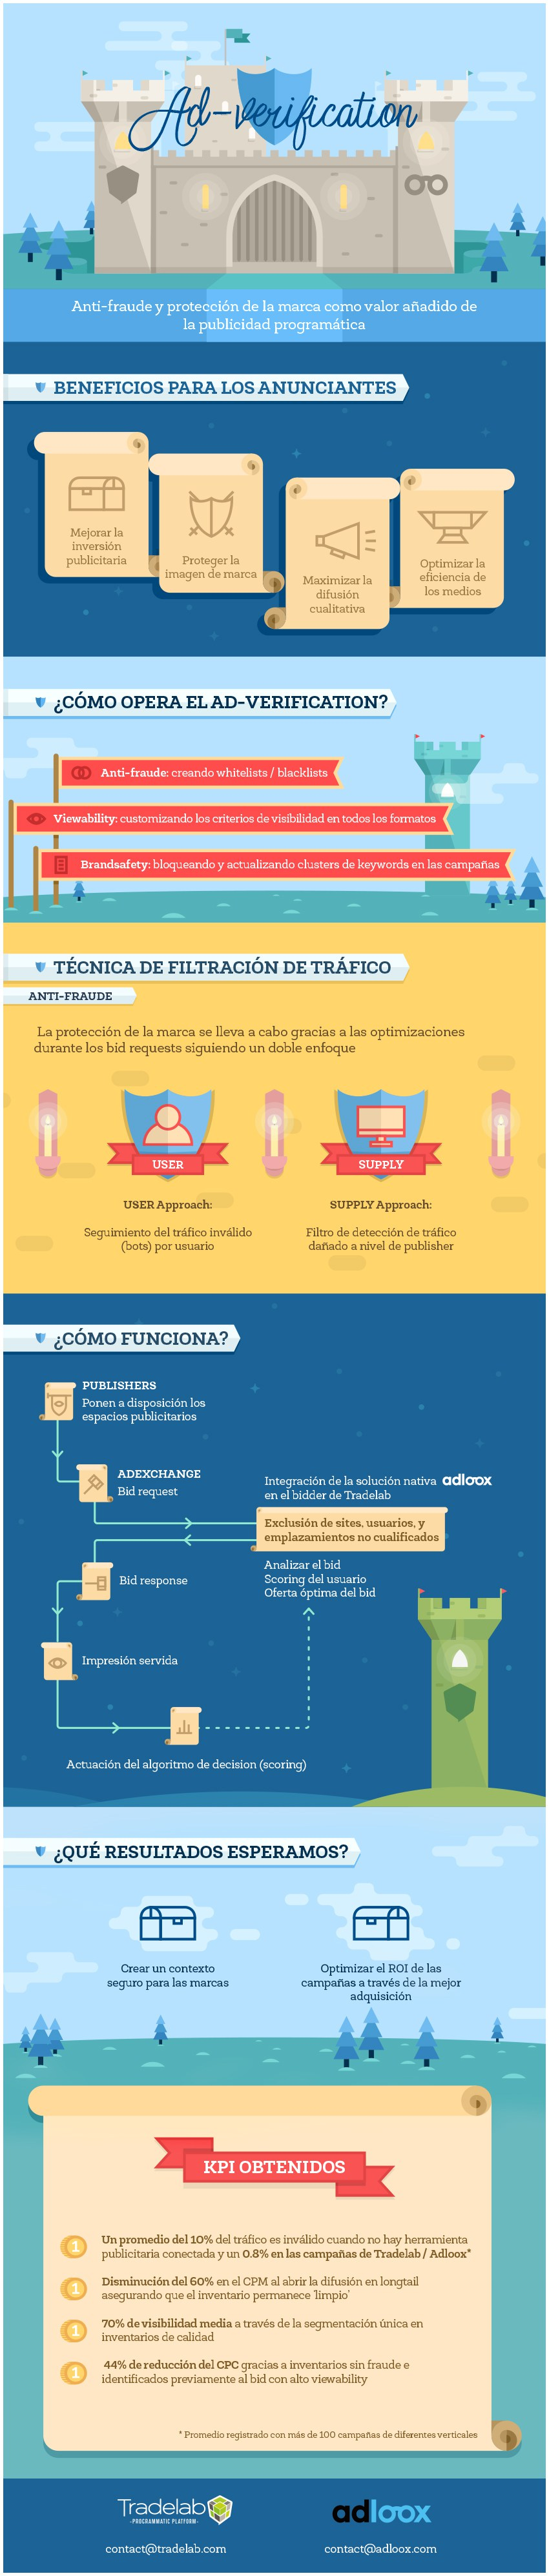 Ad-Verification para publicidad programática #infografia #infographic #marketing